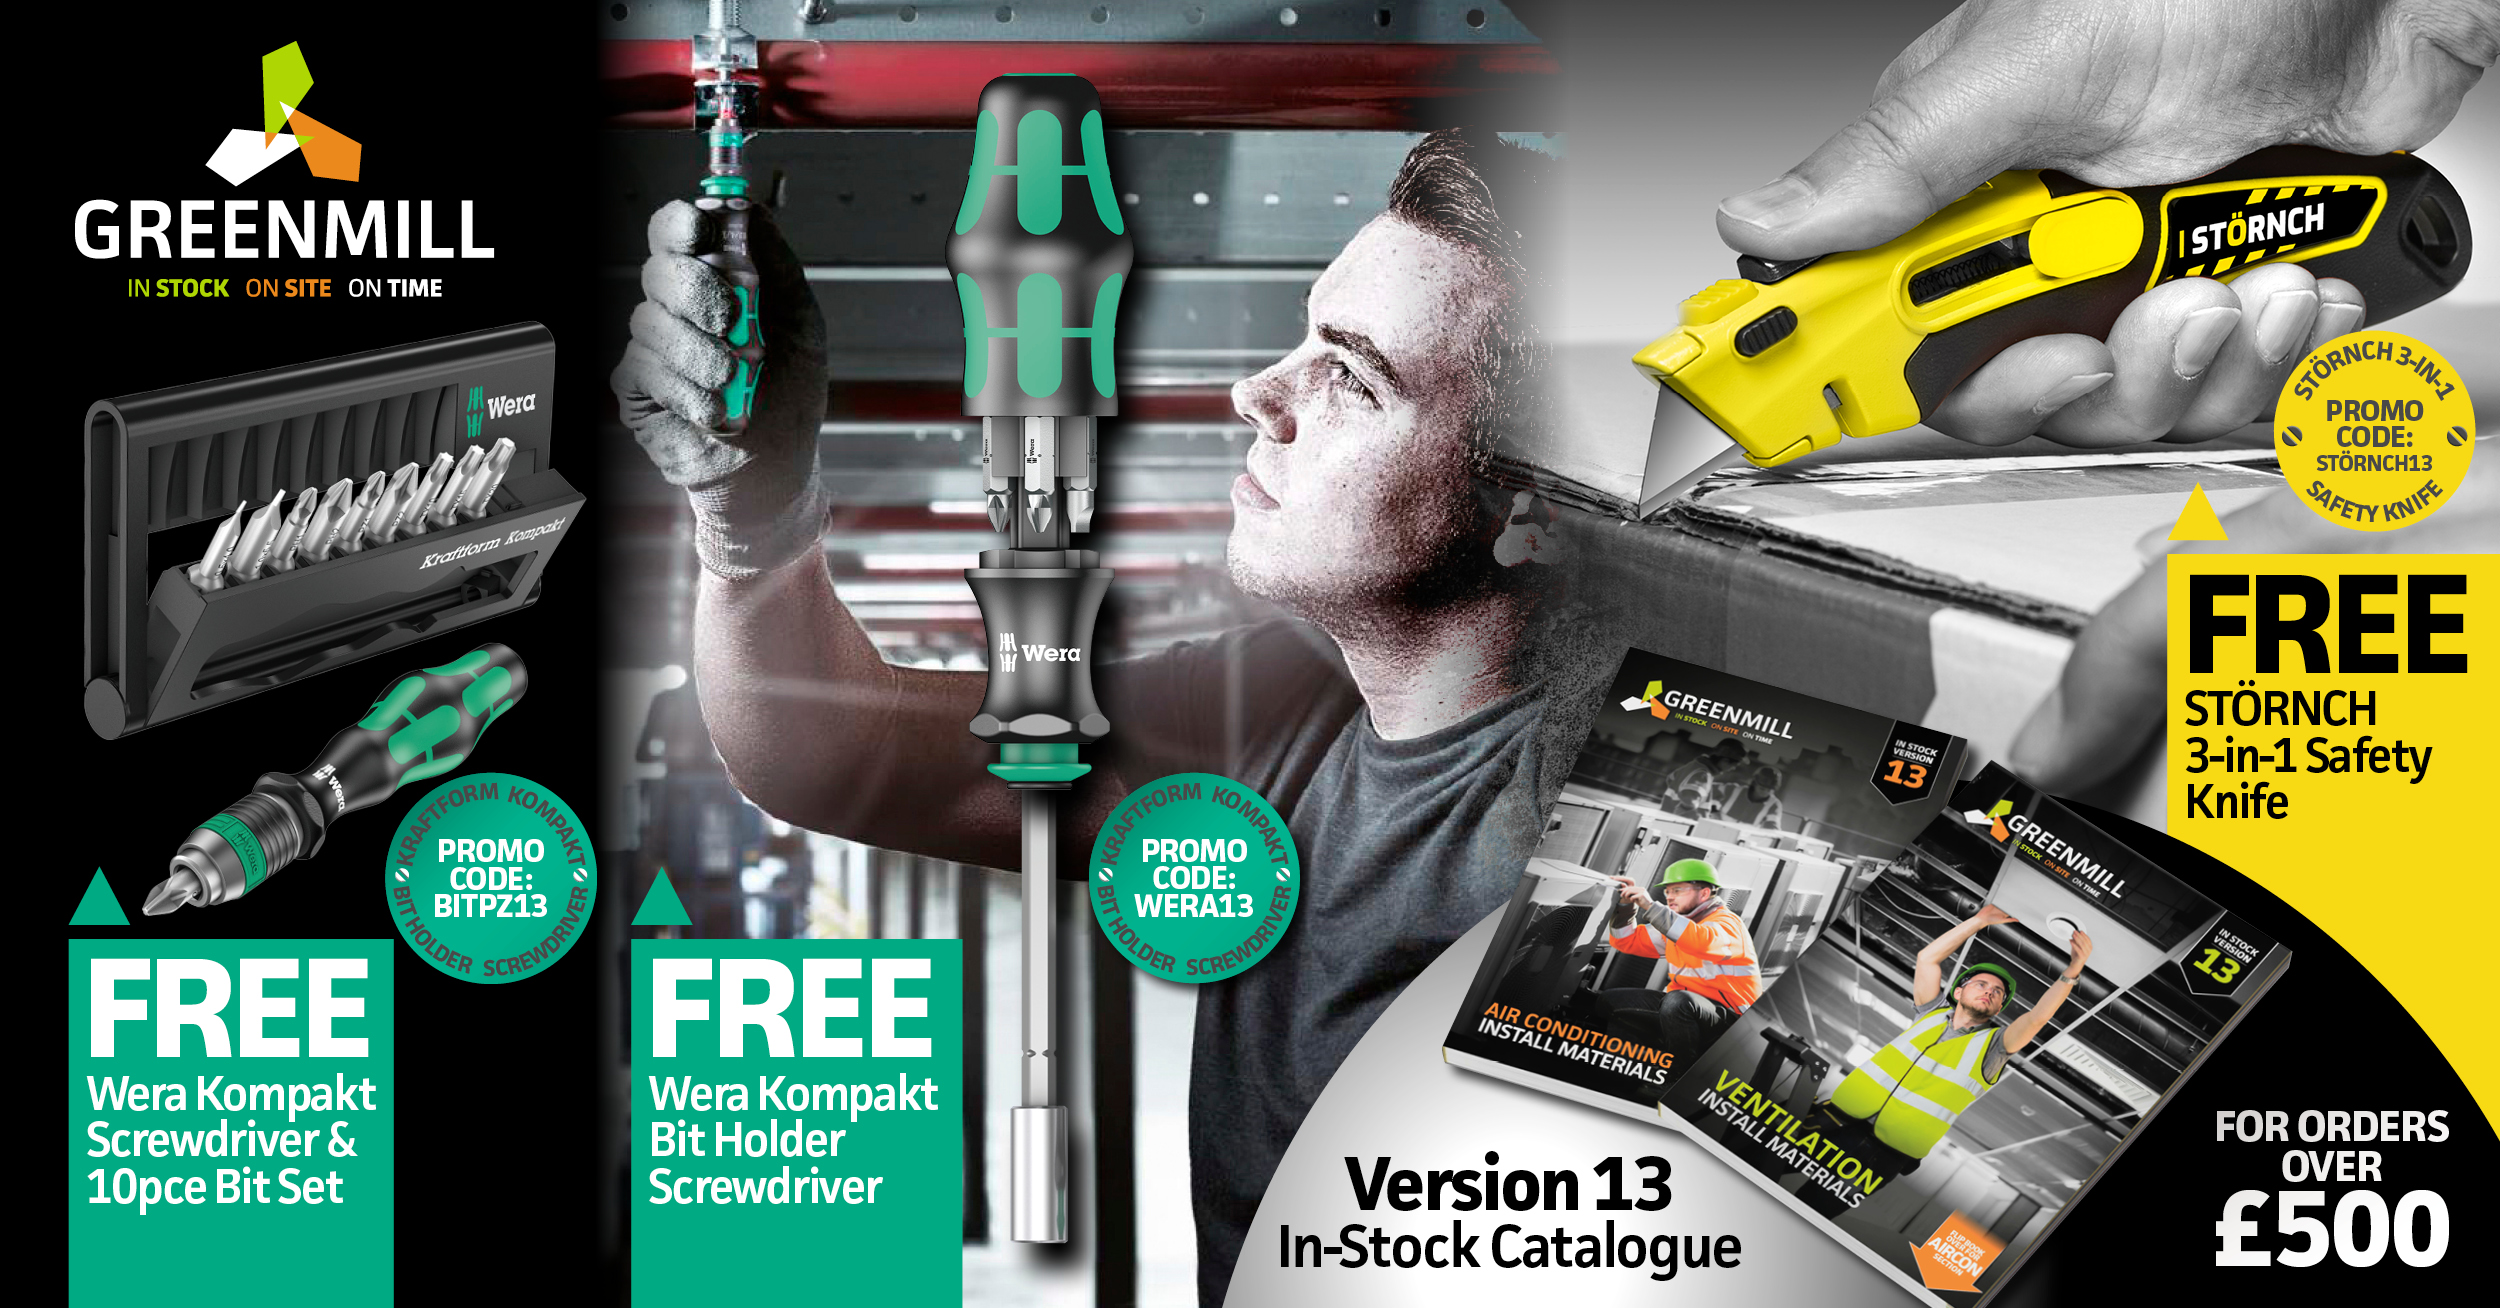 NEW Version 13 catalogue & SPECIAL promotion